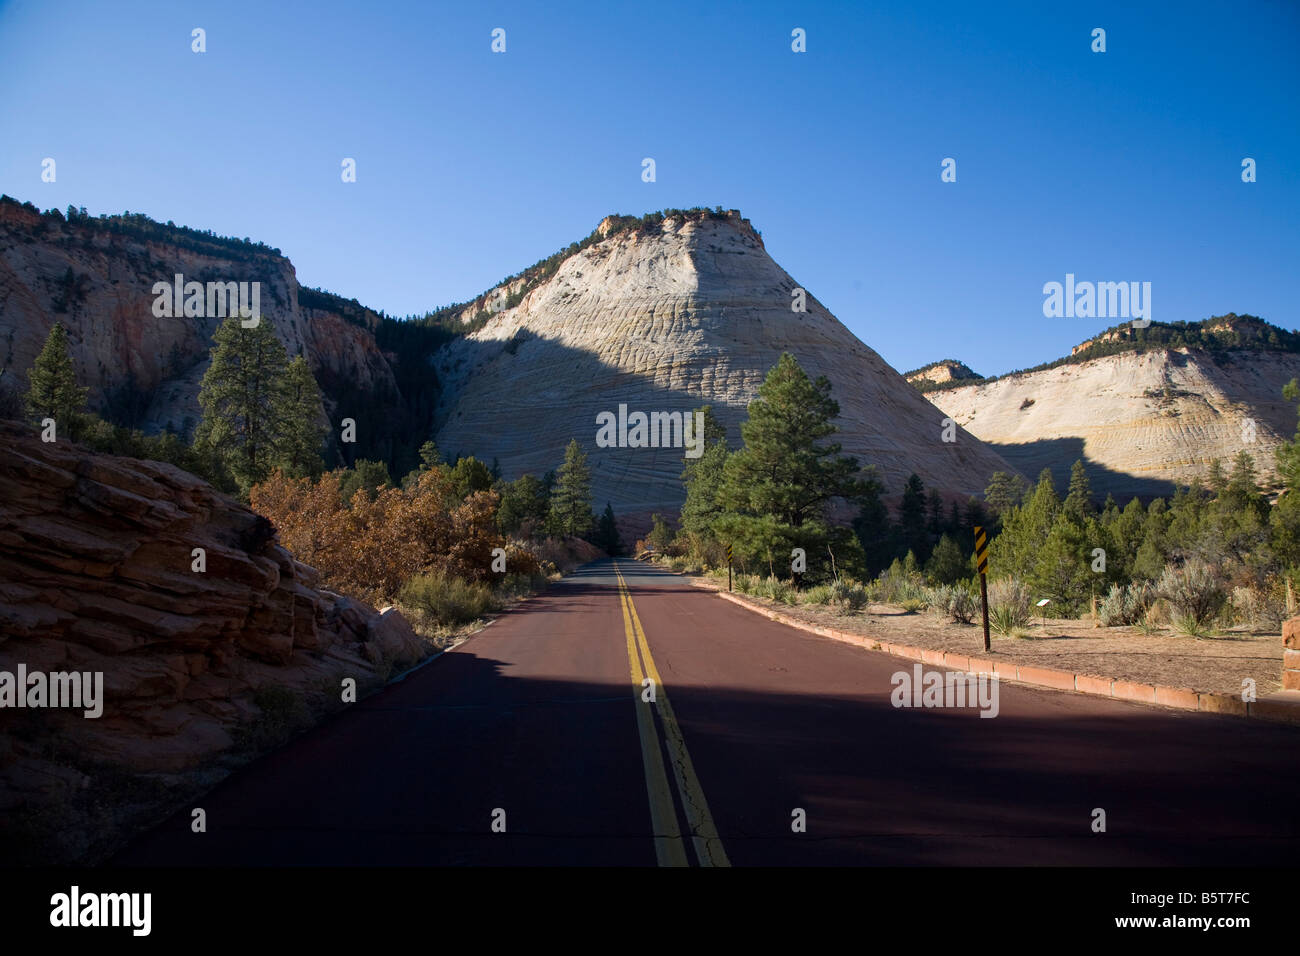 Checkerboard Mesa Zion National Park Utah - Stock Image